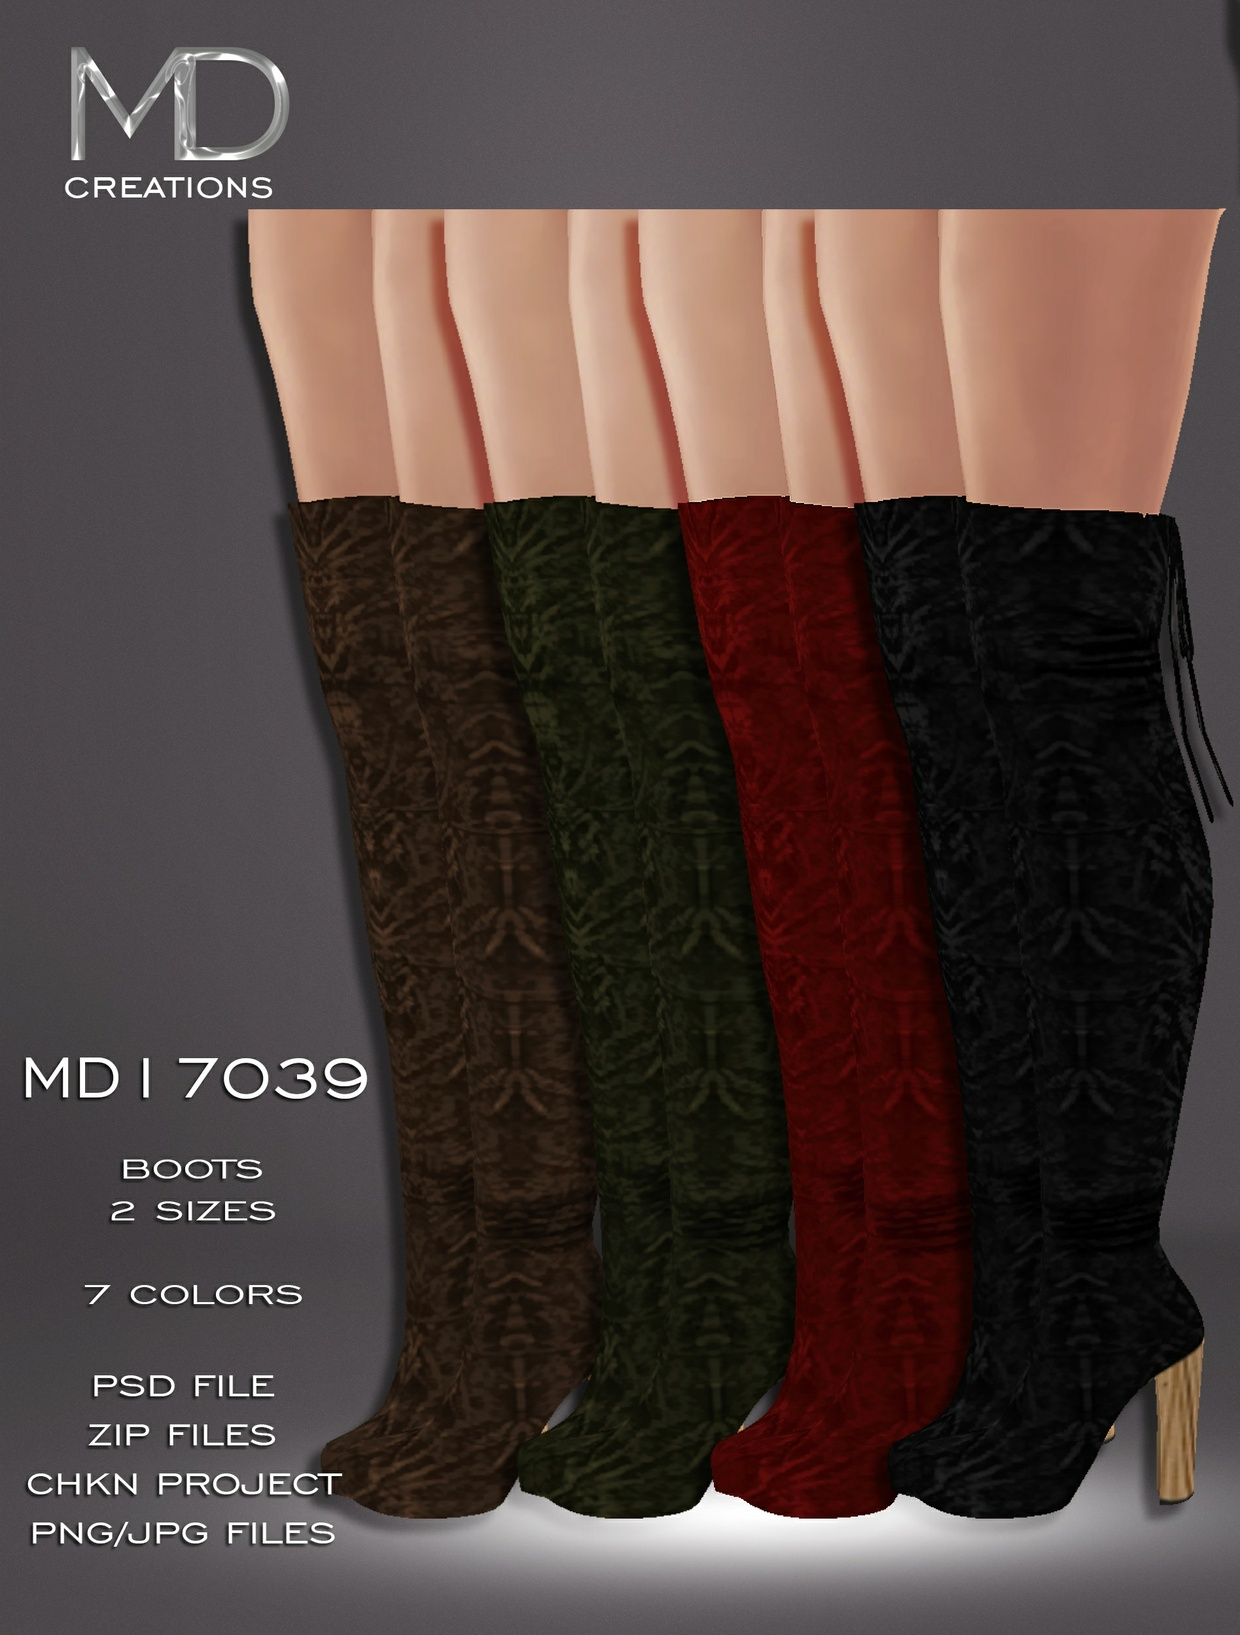 MD17039 - Boots - PSD File